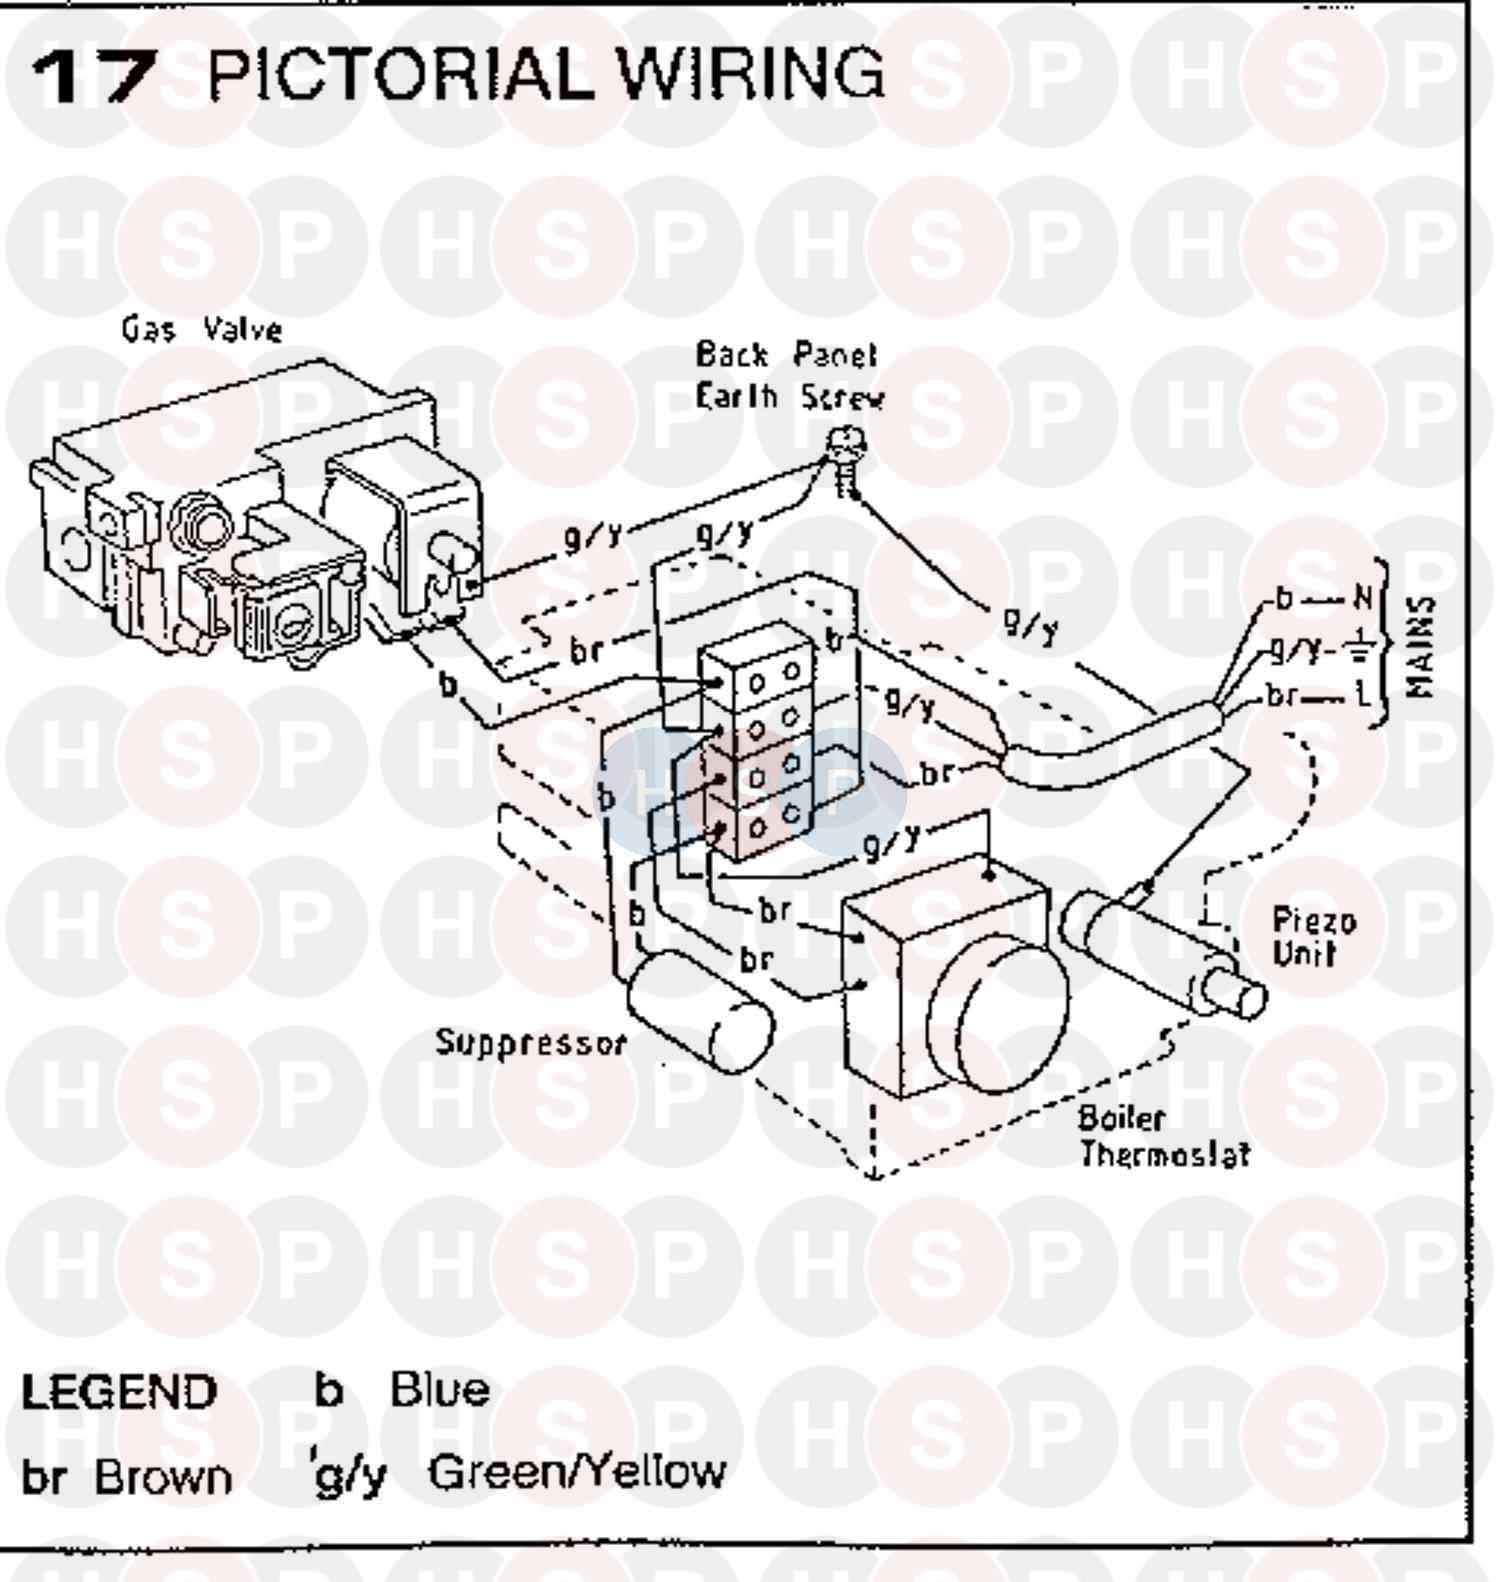 Ideal CLASSIC RS 30 Appliance Diagram (Wiring Diagram 1